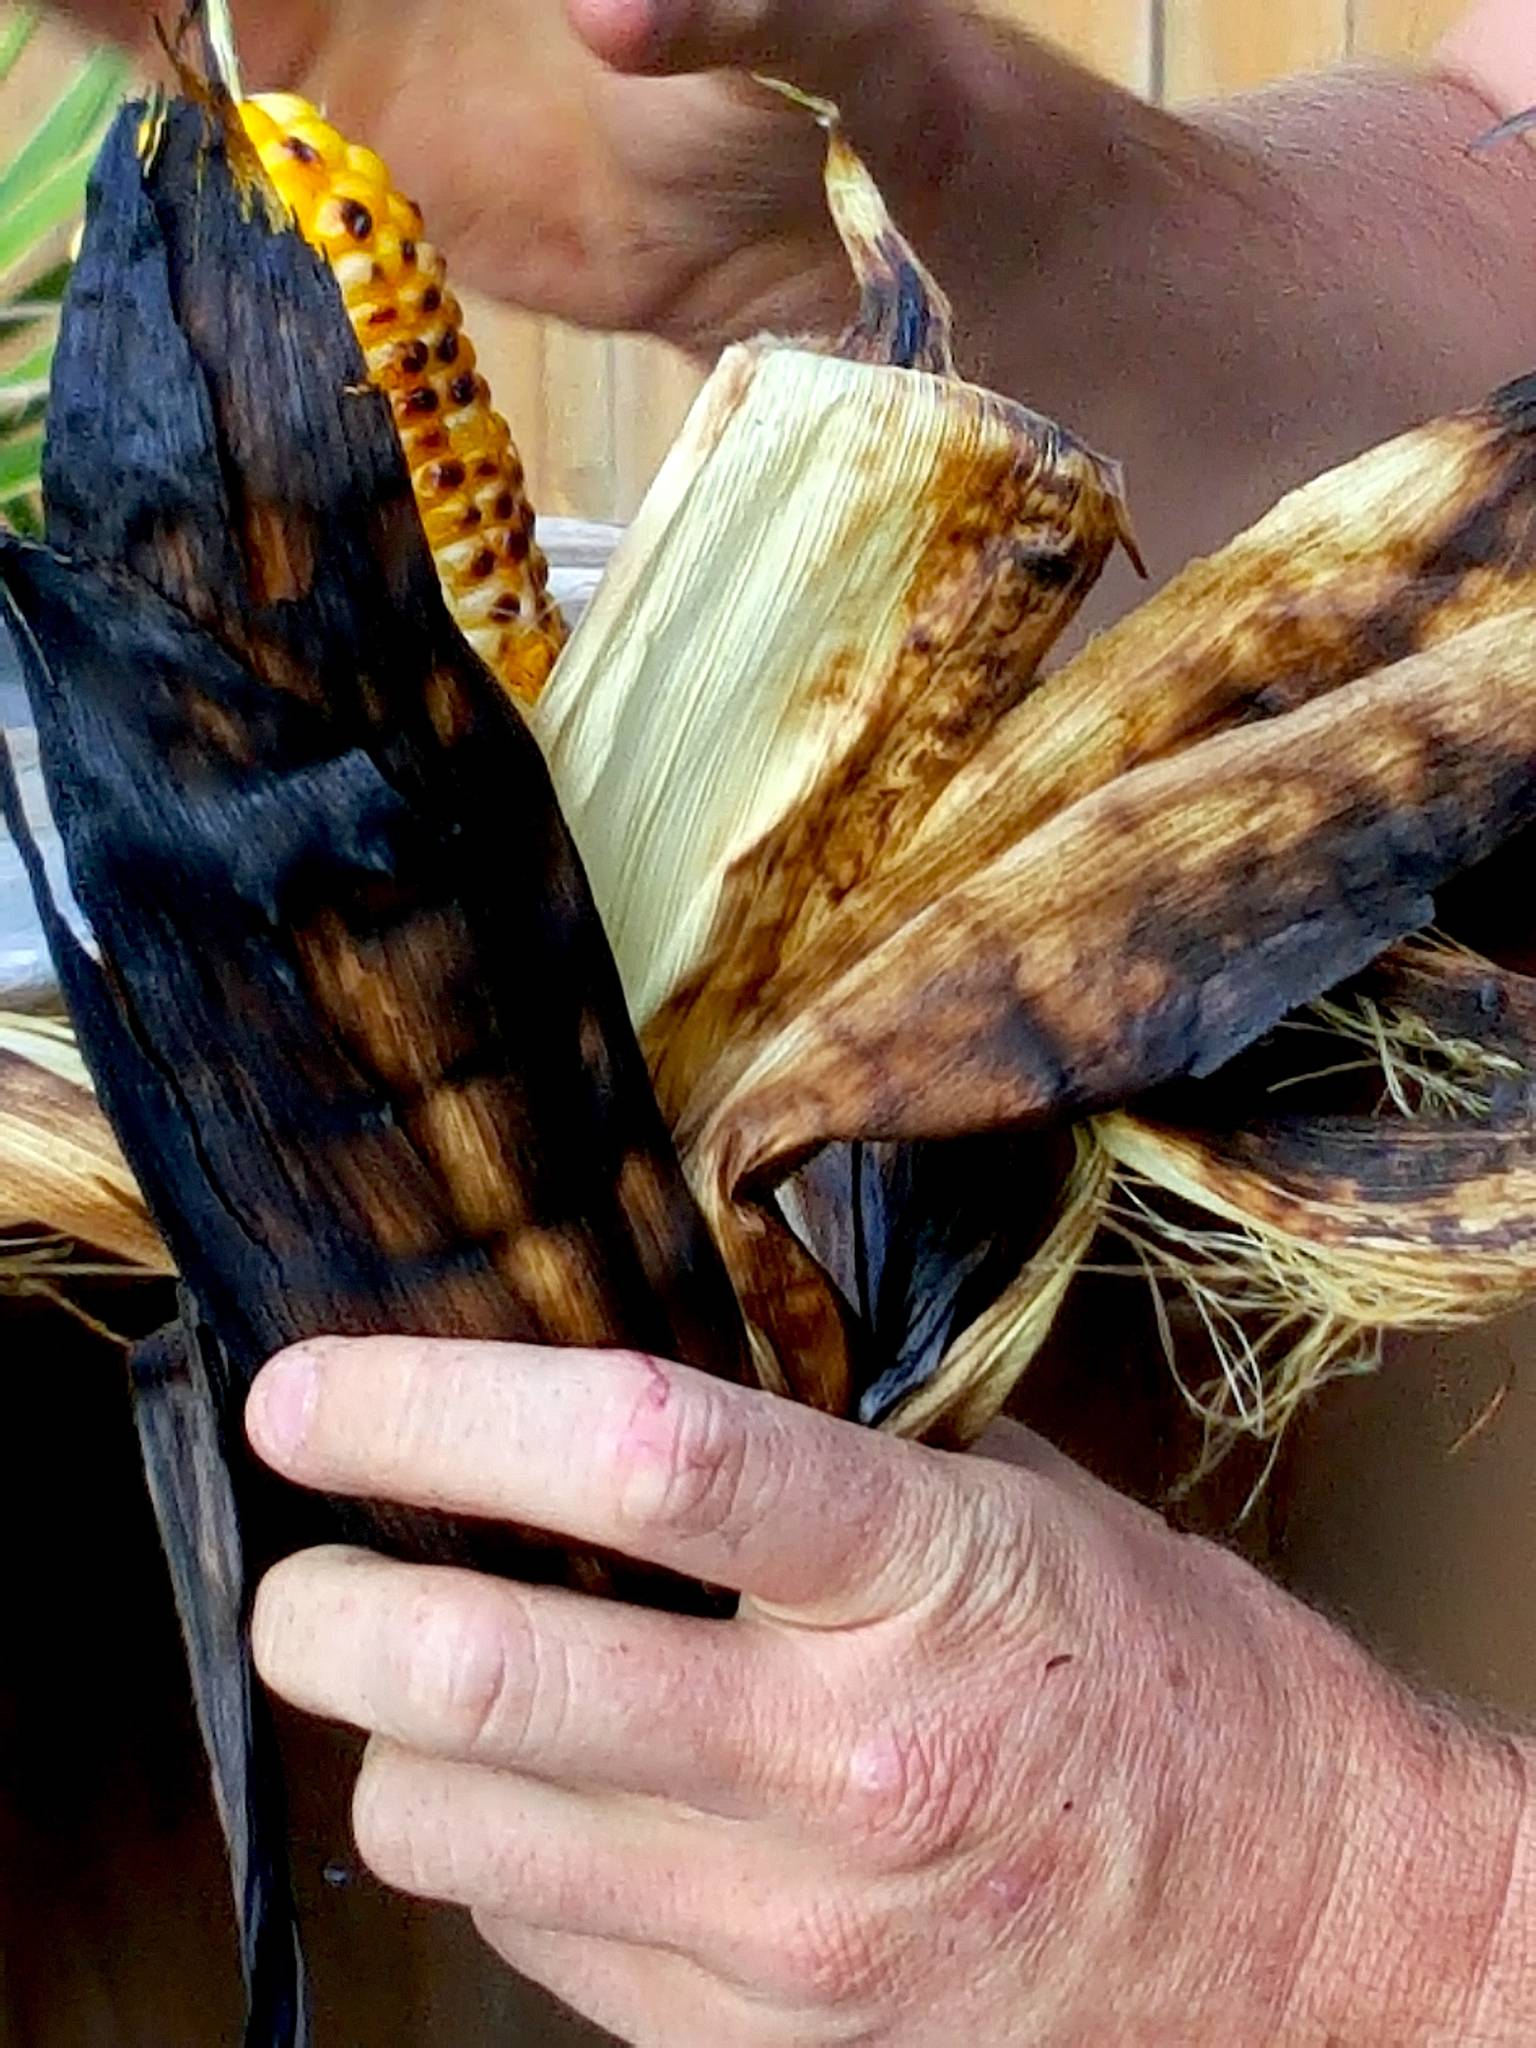 Removing burnt husks from barbecued sweet corn.